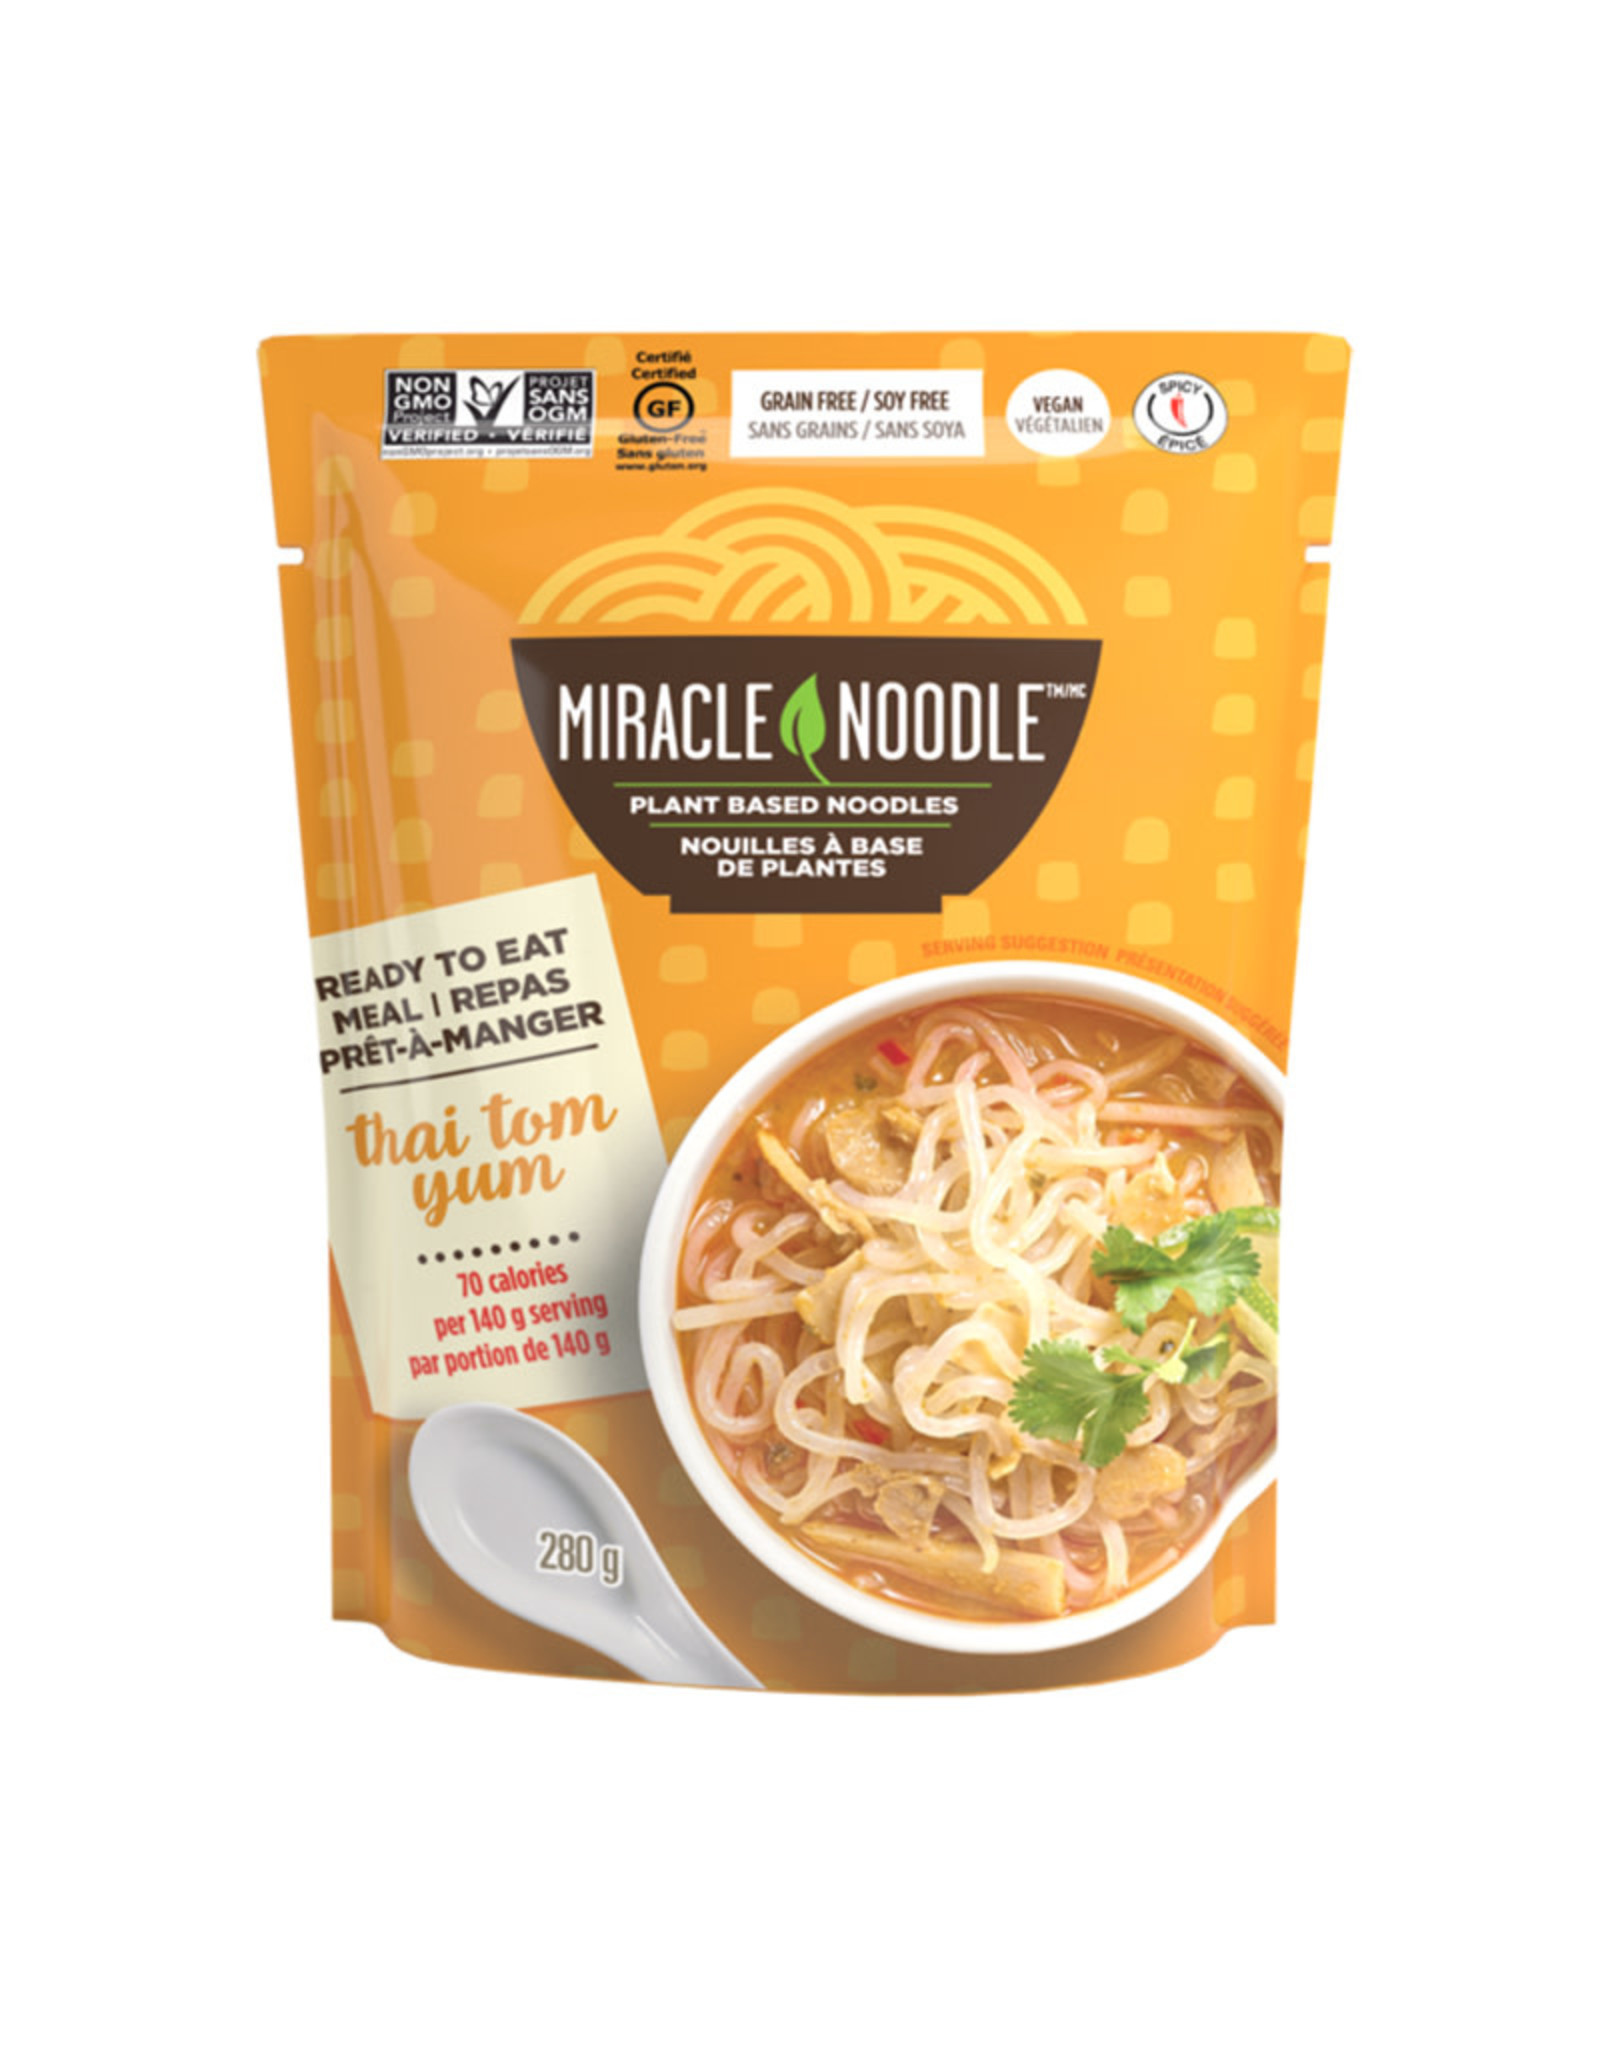 Miracle Noodle Miracle Noodle - Ready-to-Eat, Thai Tom Yum